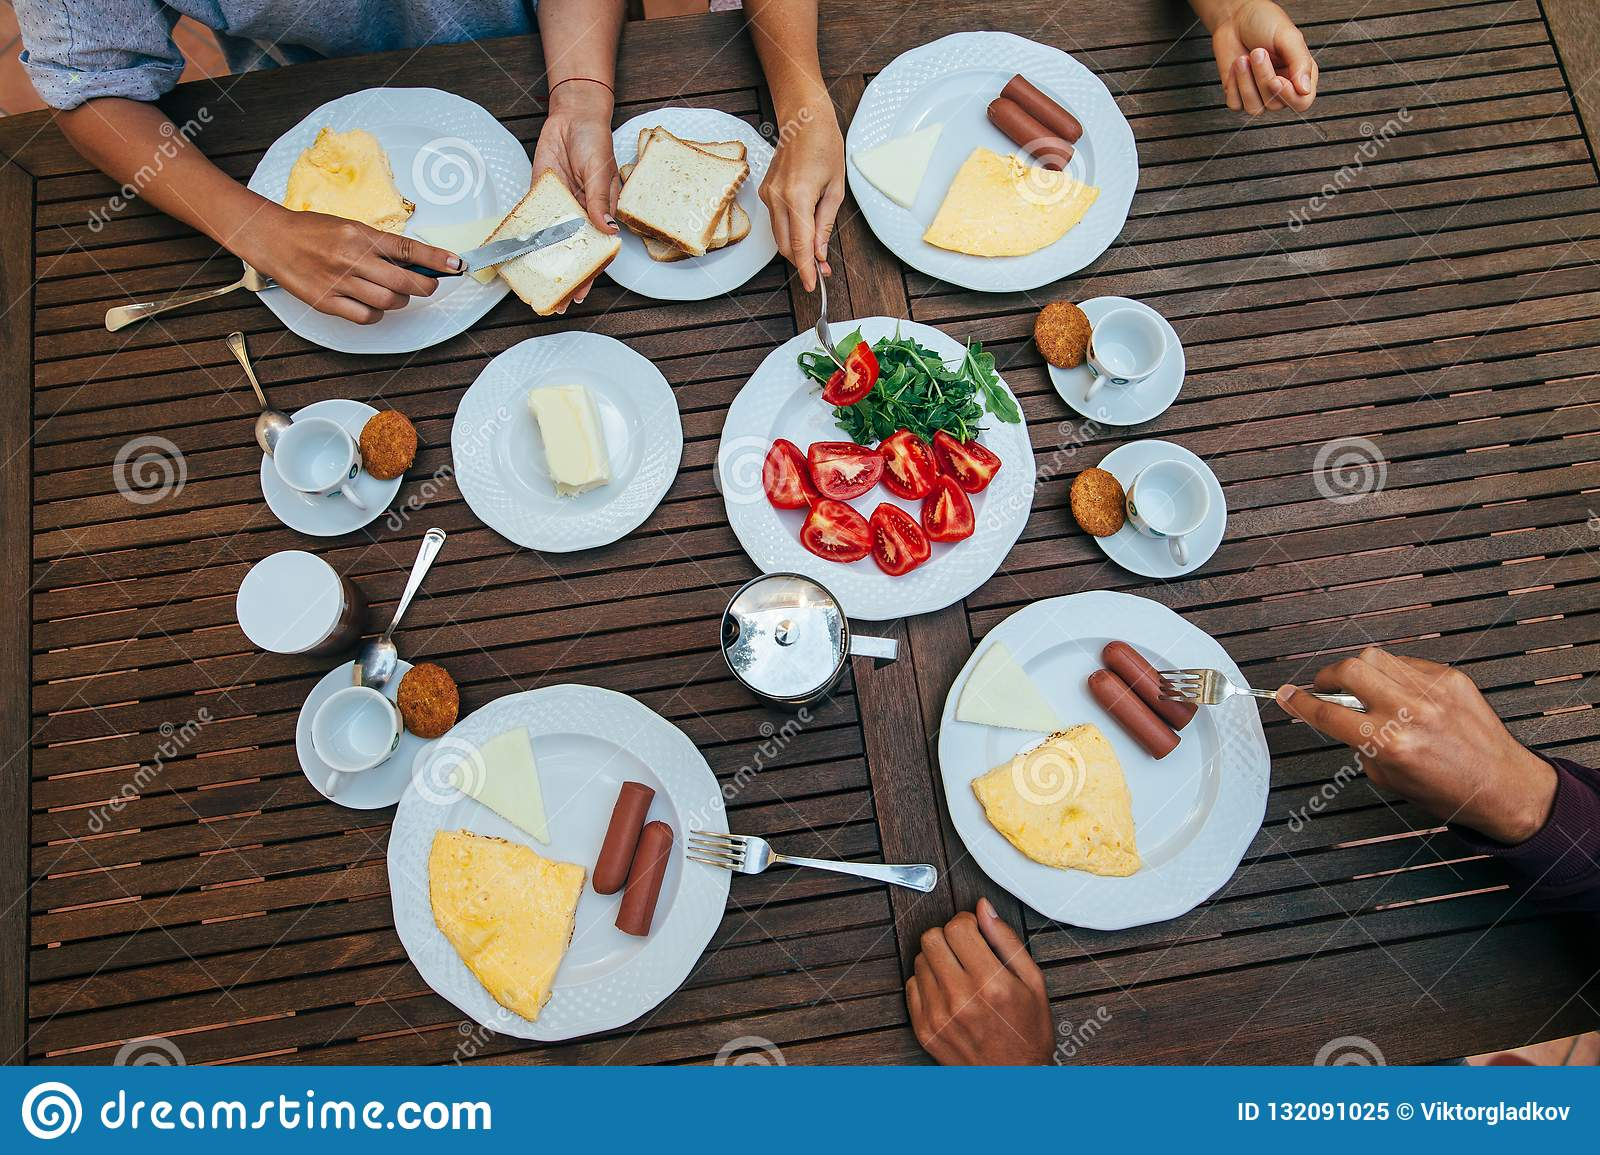 Top view of group of people having breakfast together